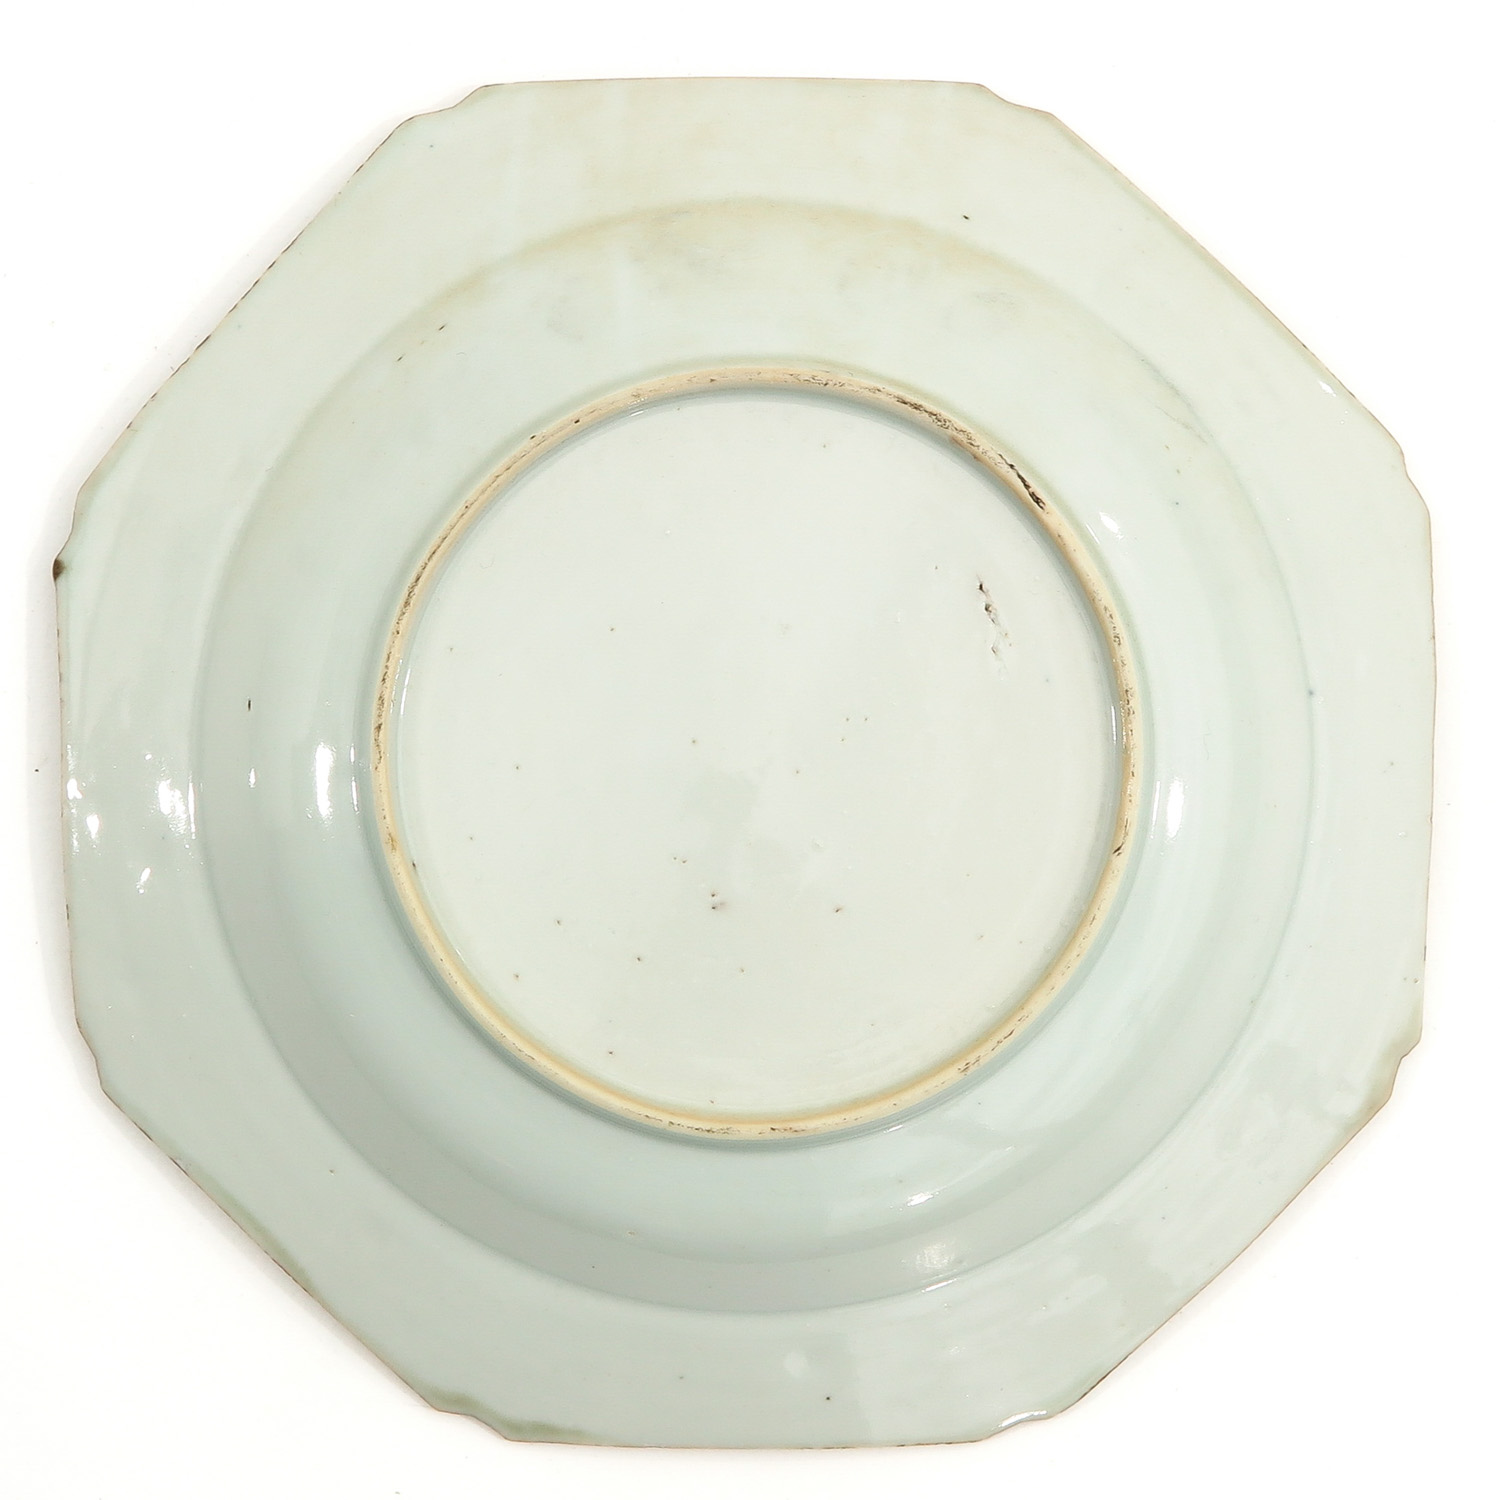 A Series of 3 Blue and White Plates - Image 6 of 10